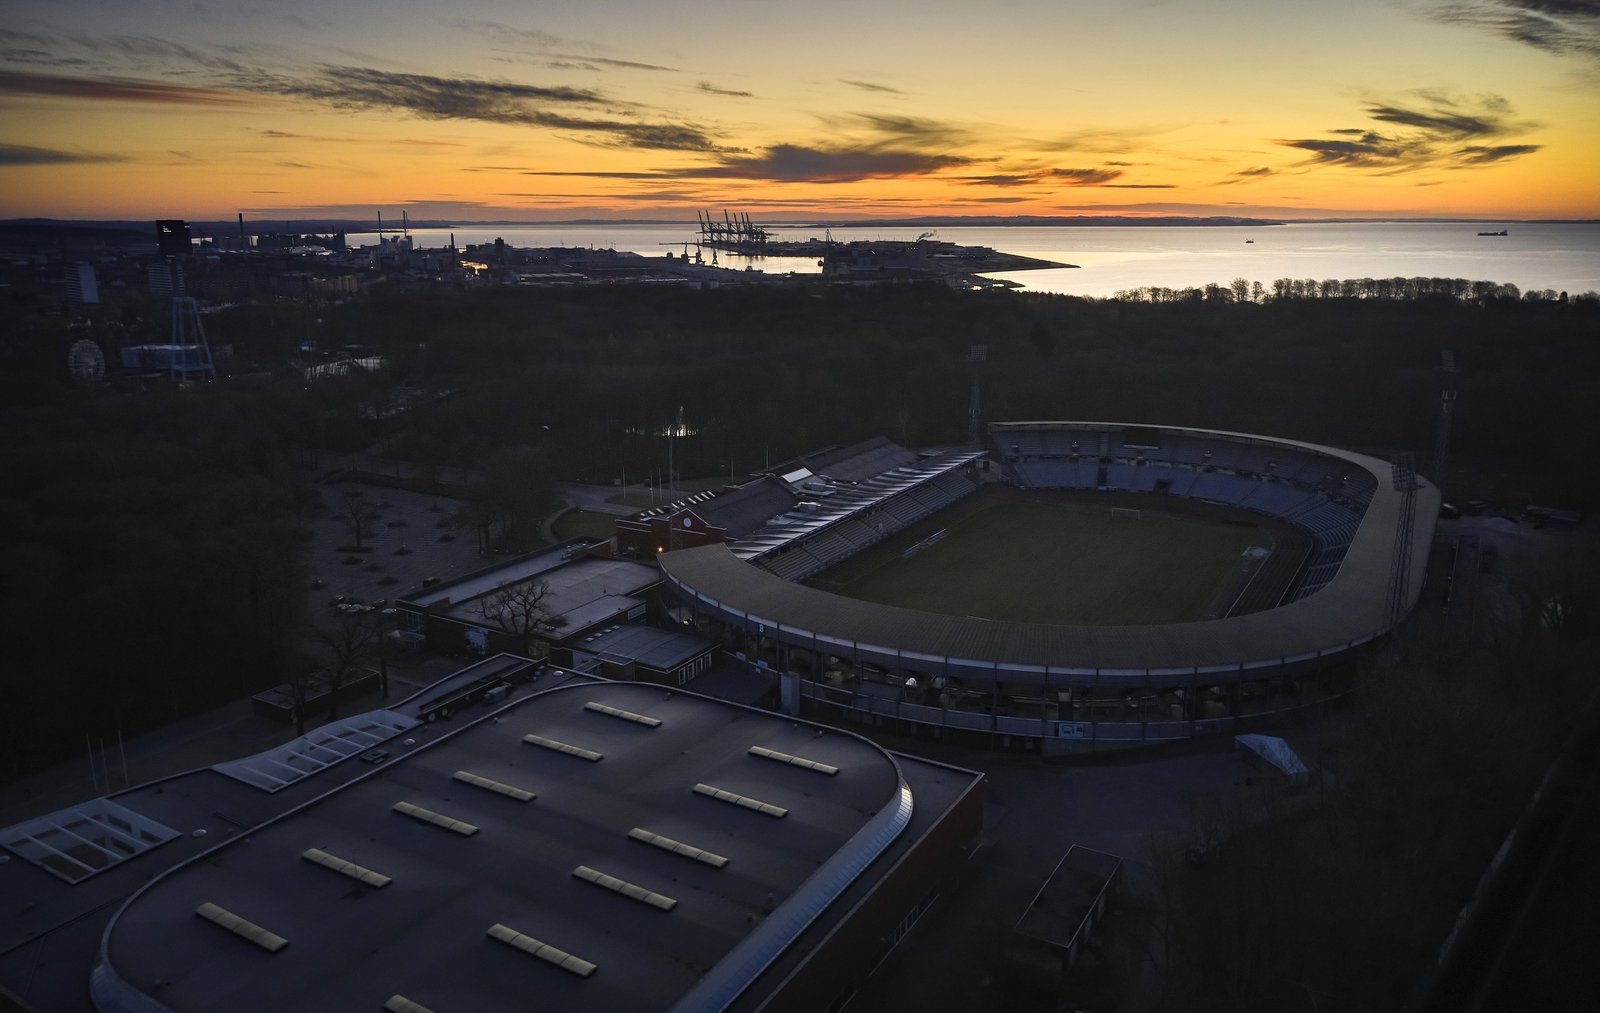 Image - An aerial view of AGF Aarhus' home ground